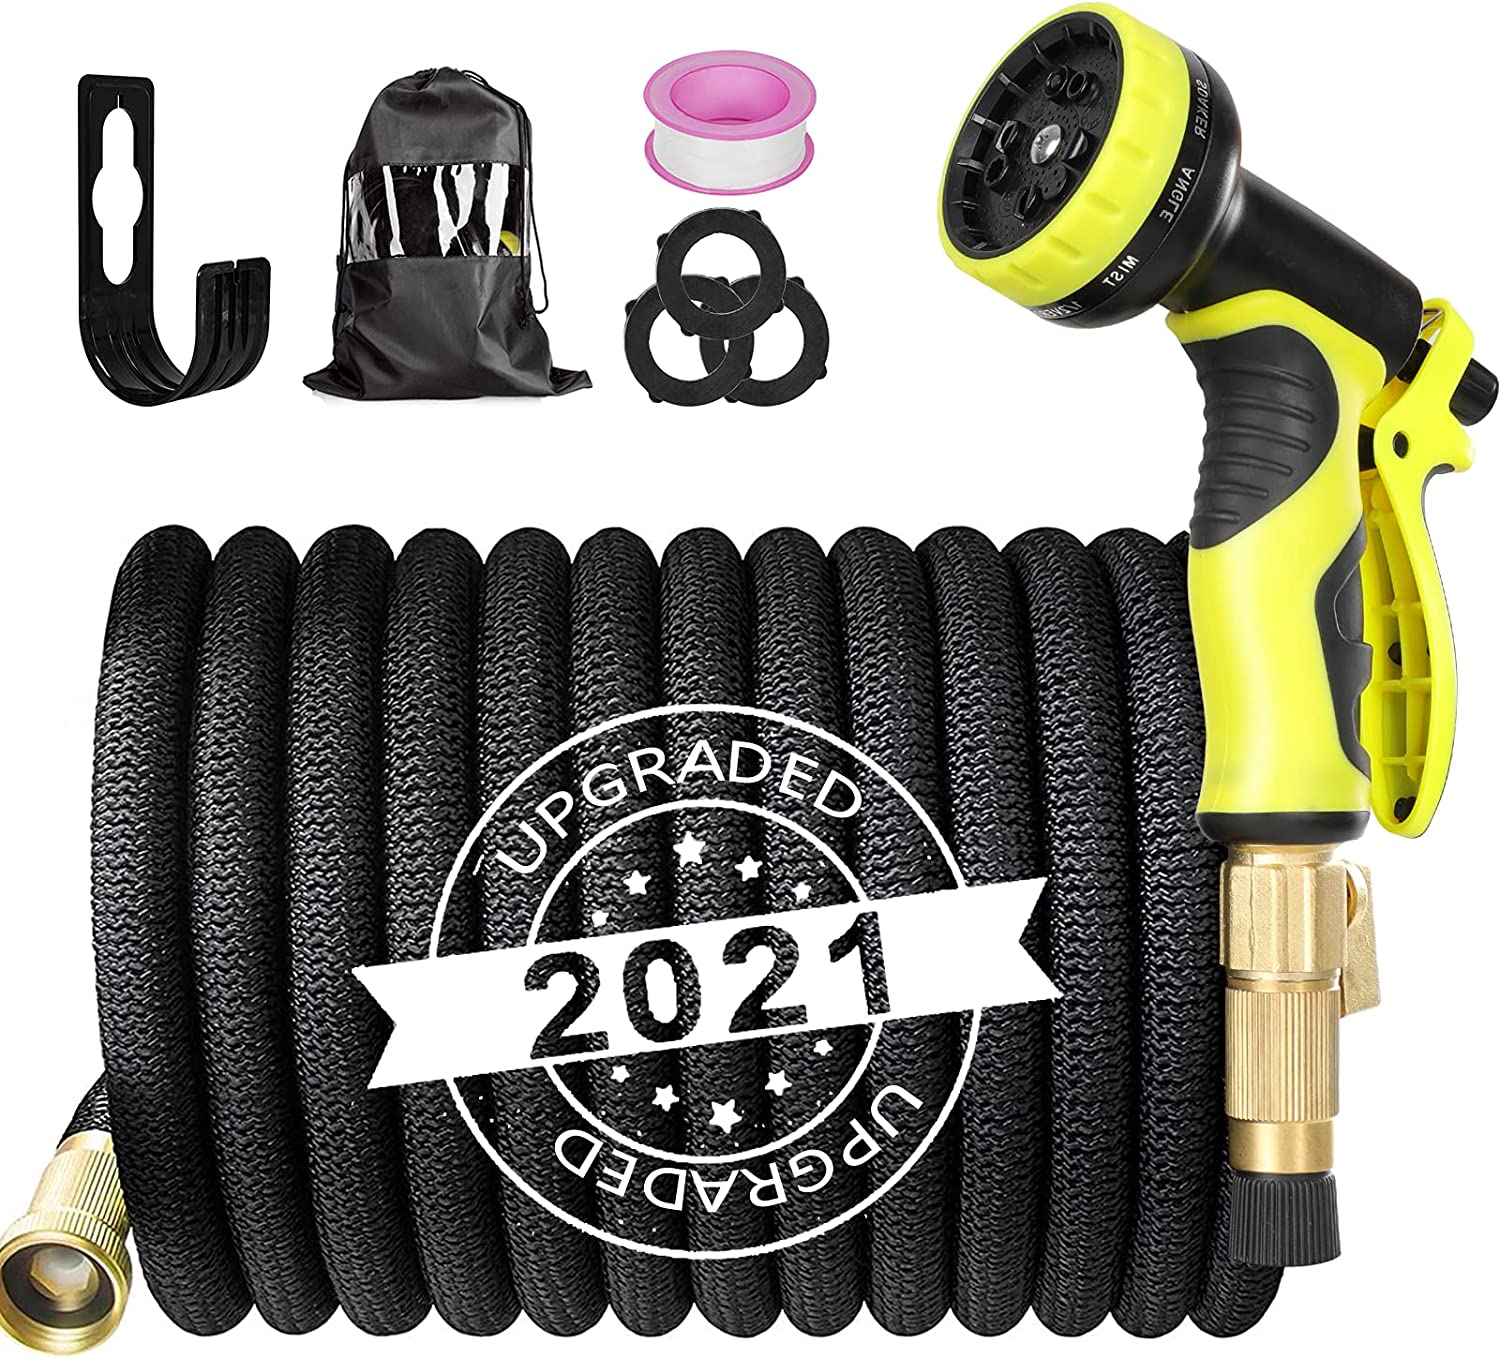 Nuaer Garden Hose, 25ft Expandable Water Hose, Flexible Water Hose With 3 Layer Latex Core 3/4